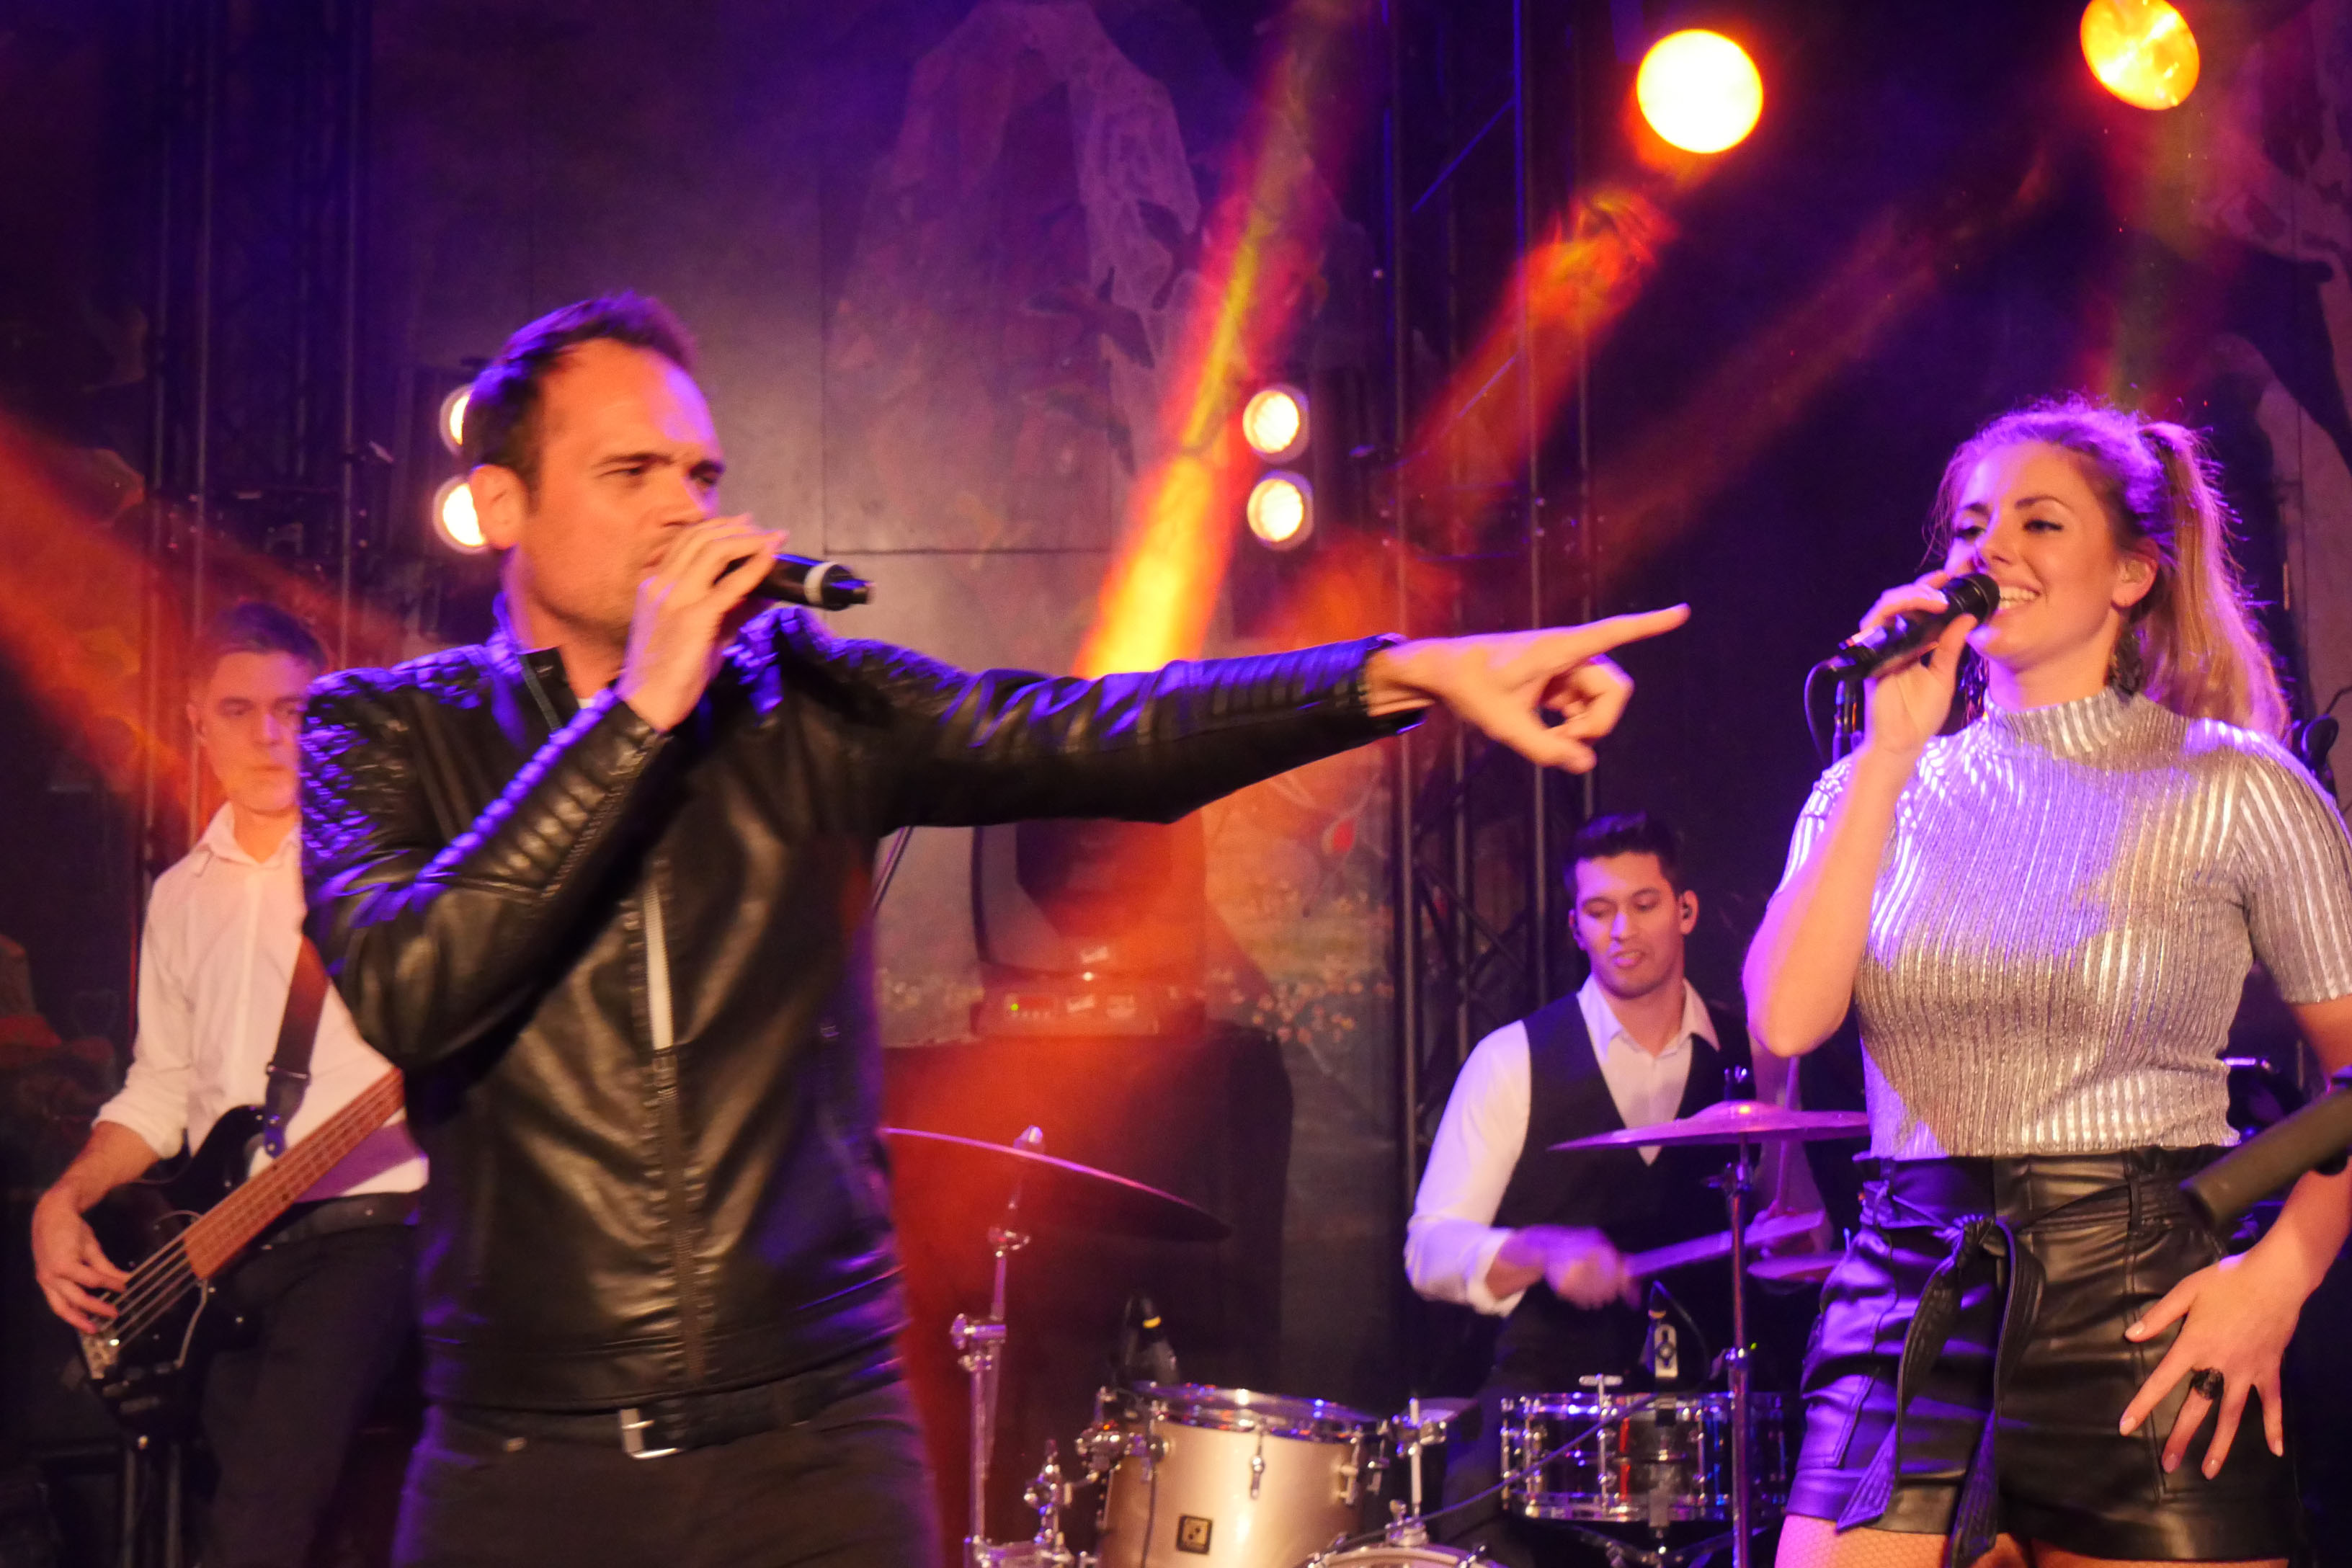 Coverband The PartyCrashers zanger en zangeres live